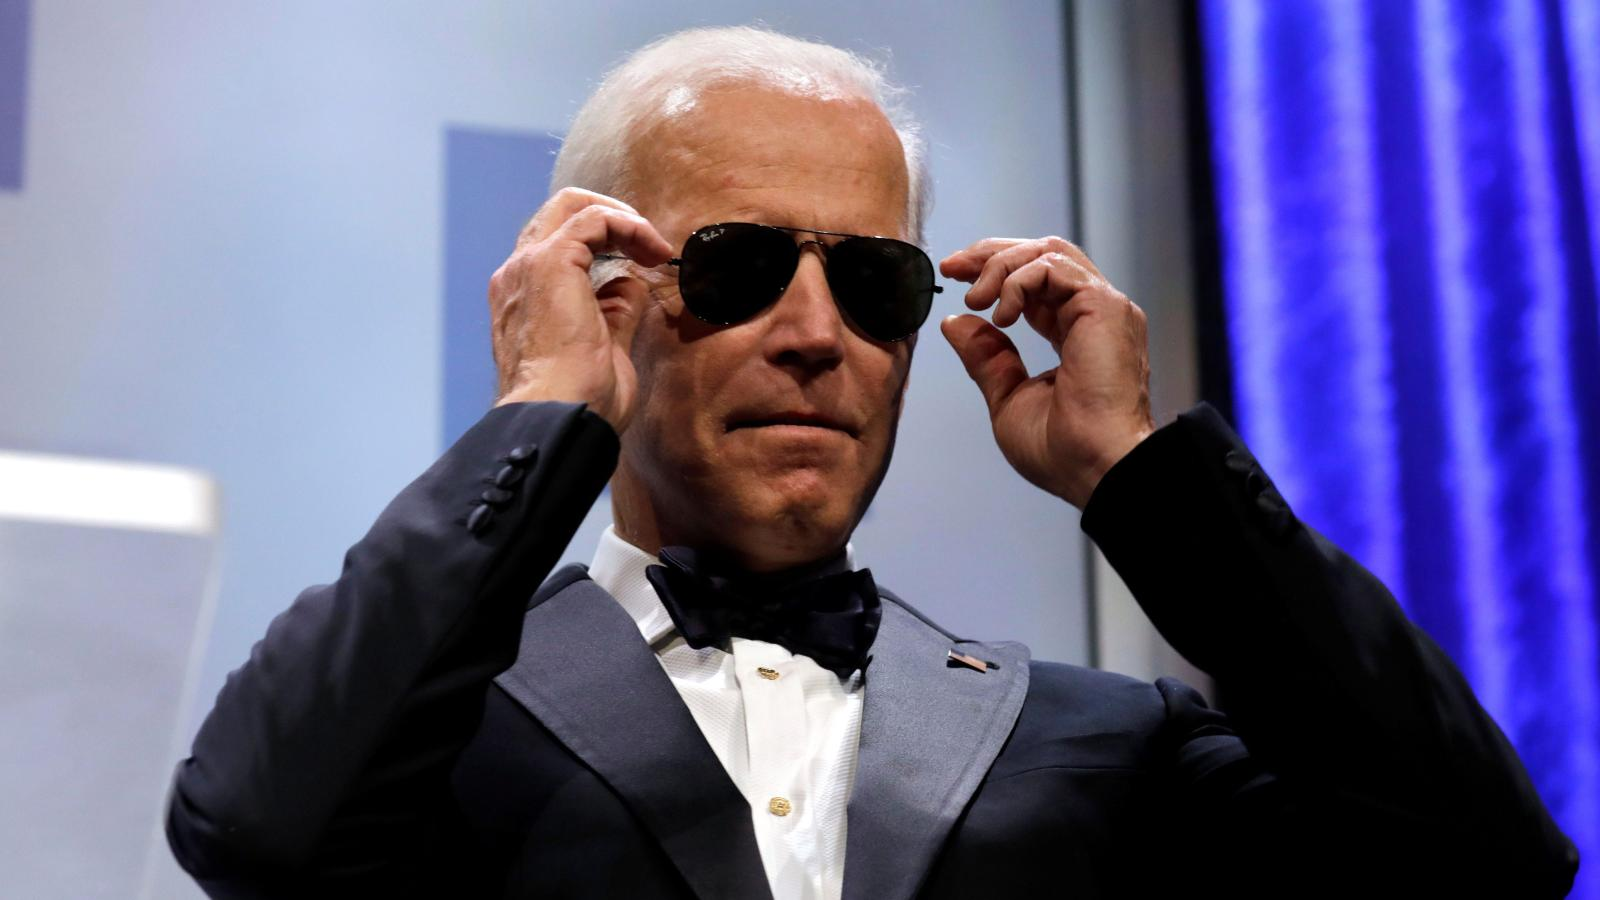 Joe Biden Has A Huge Lead